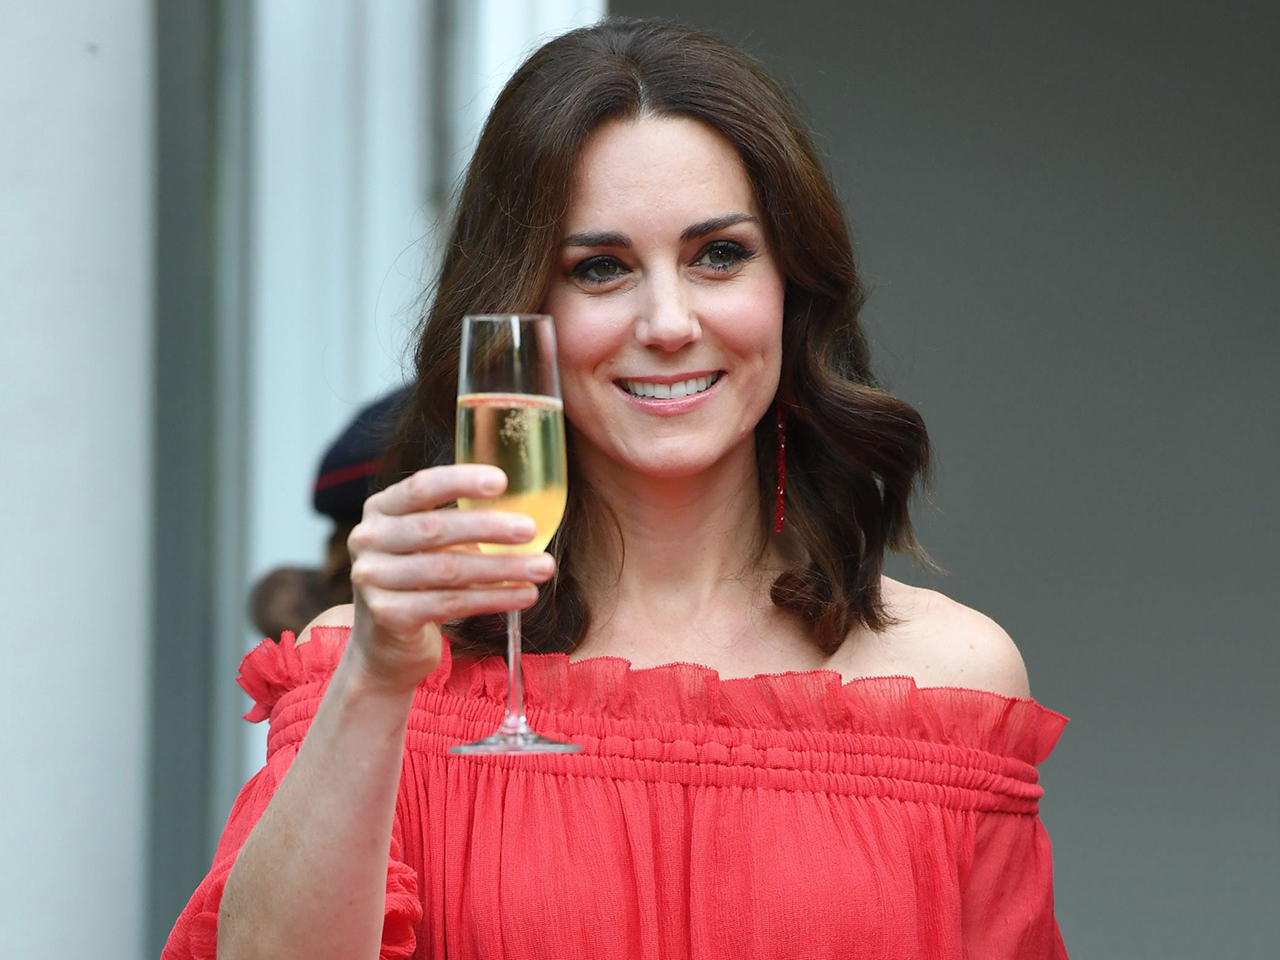 The Duchess makes a toast in Kate Middleton's red dress